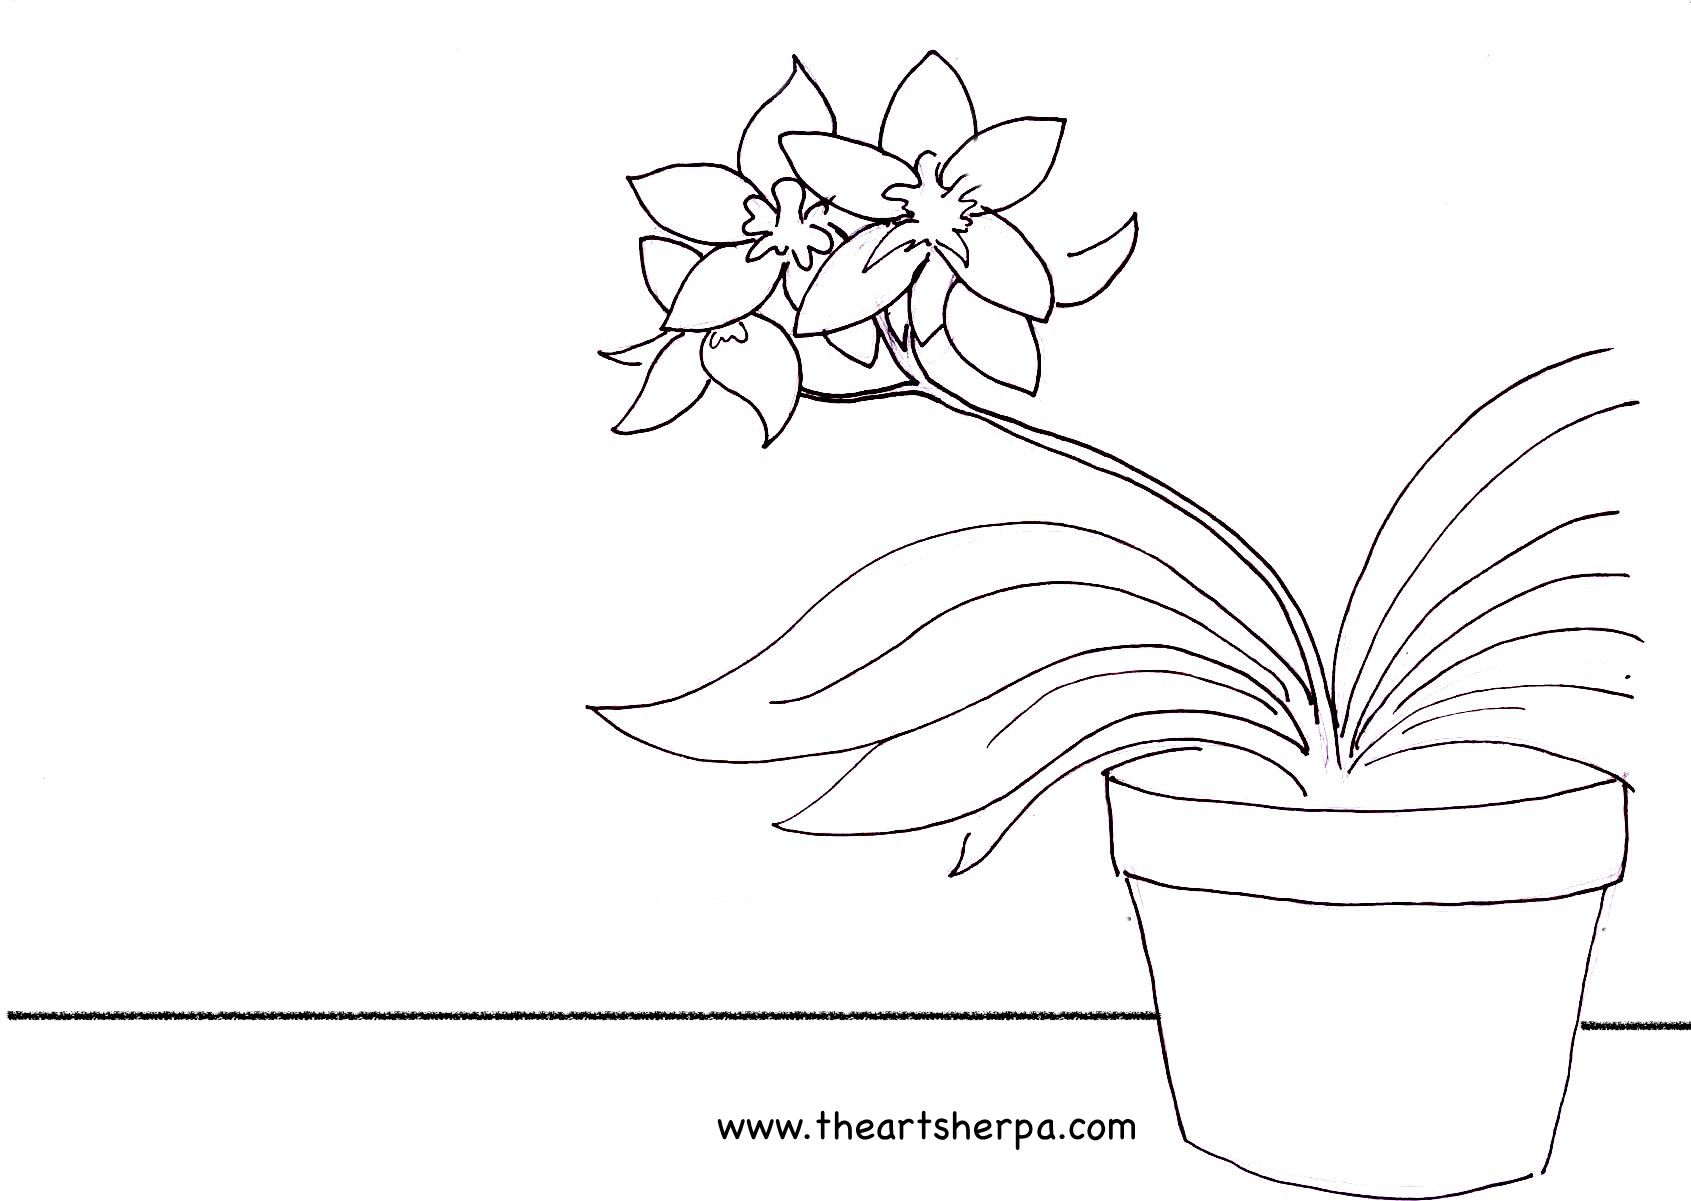 Traceable for the Orchid As seem on youtube with the art